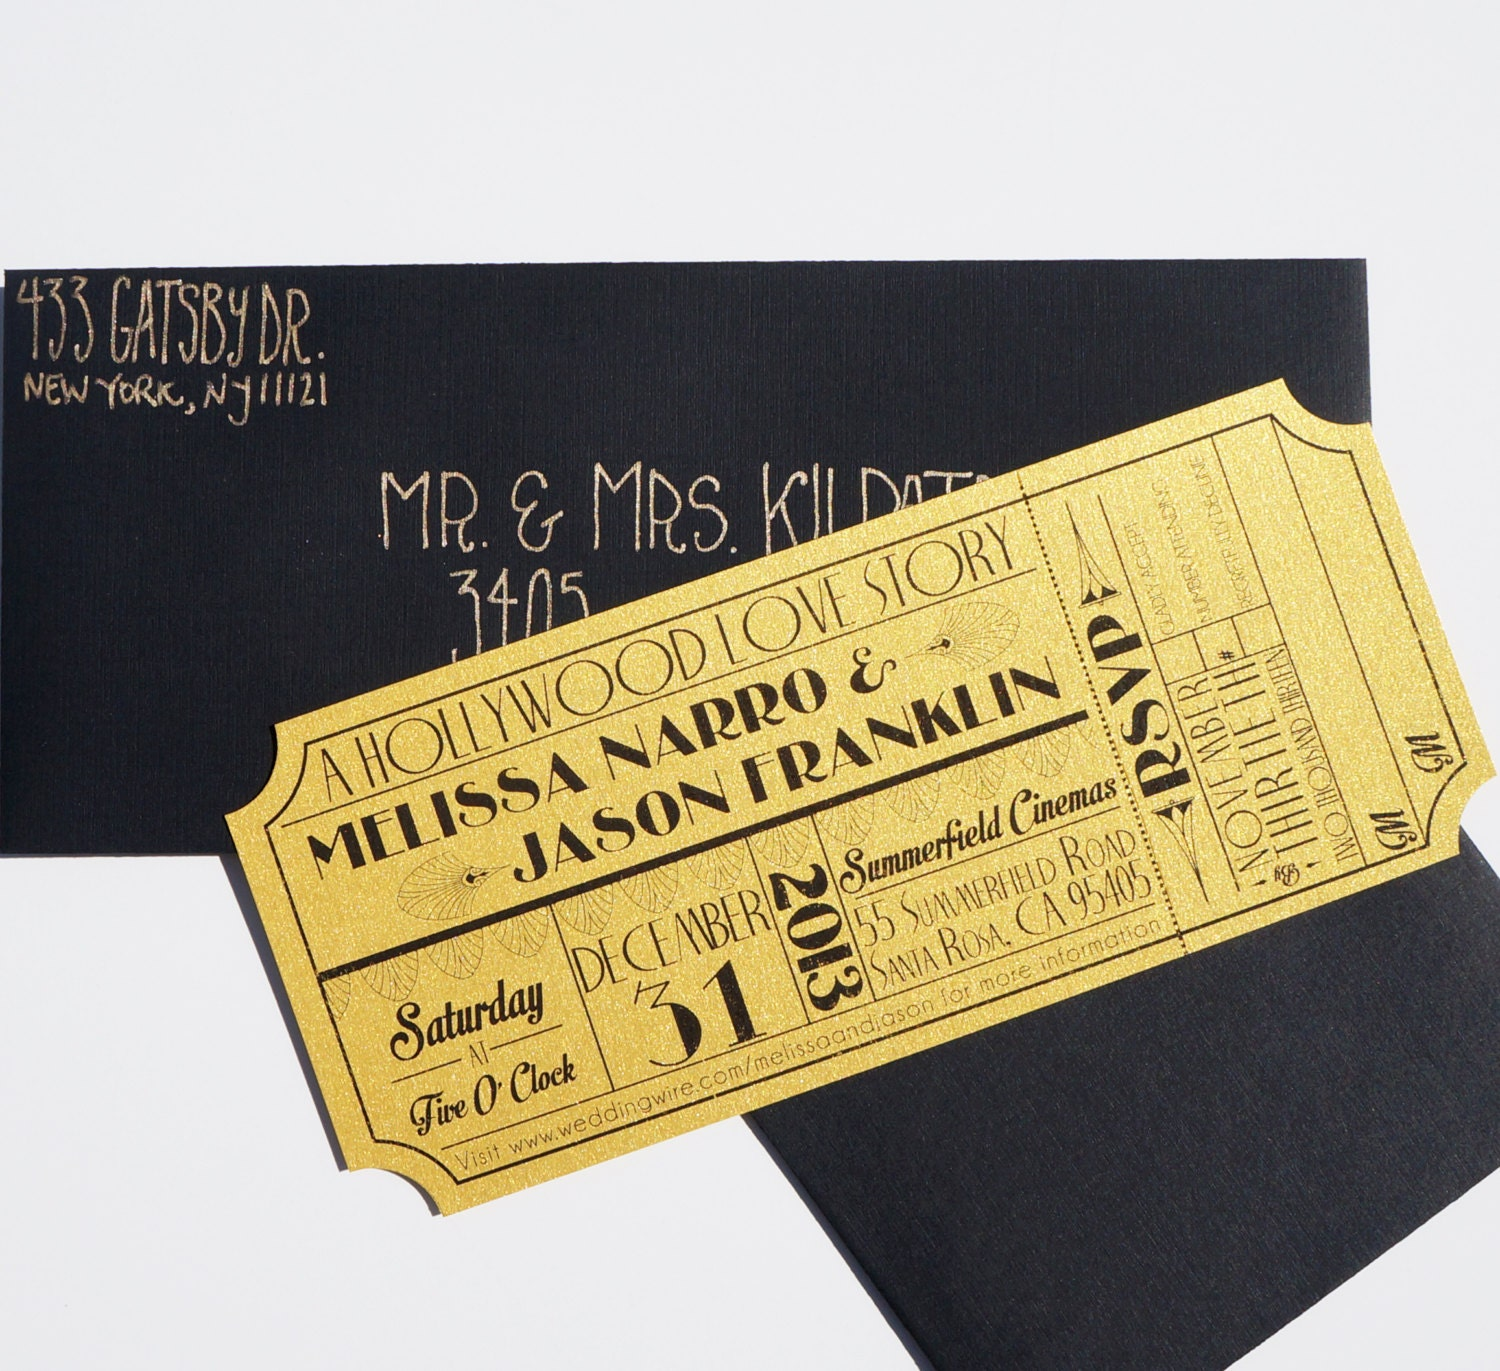 Old Hollywood Art Deco Gold Movie Ticket on oscar party invite